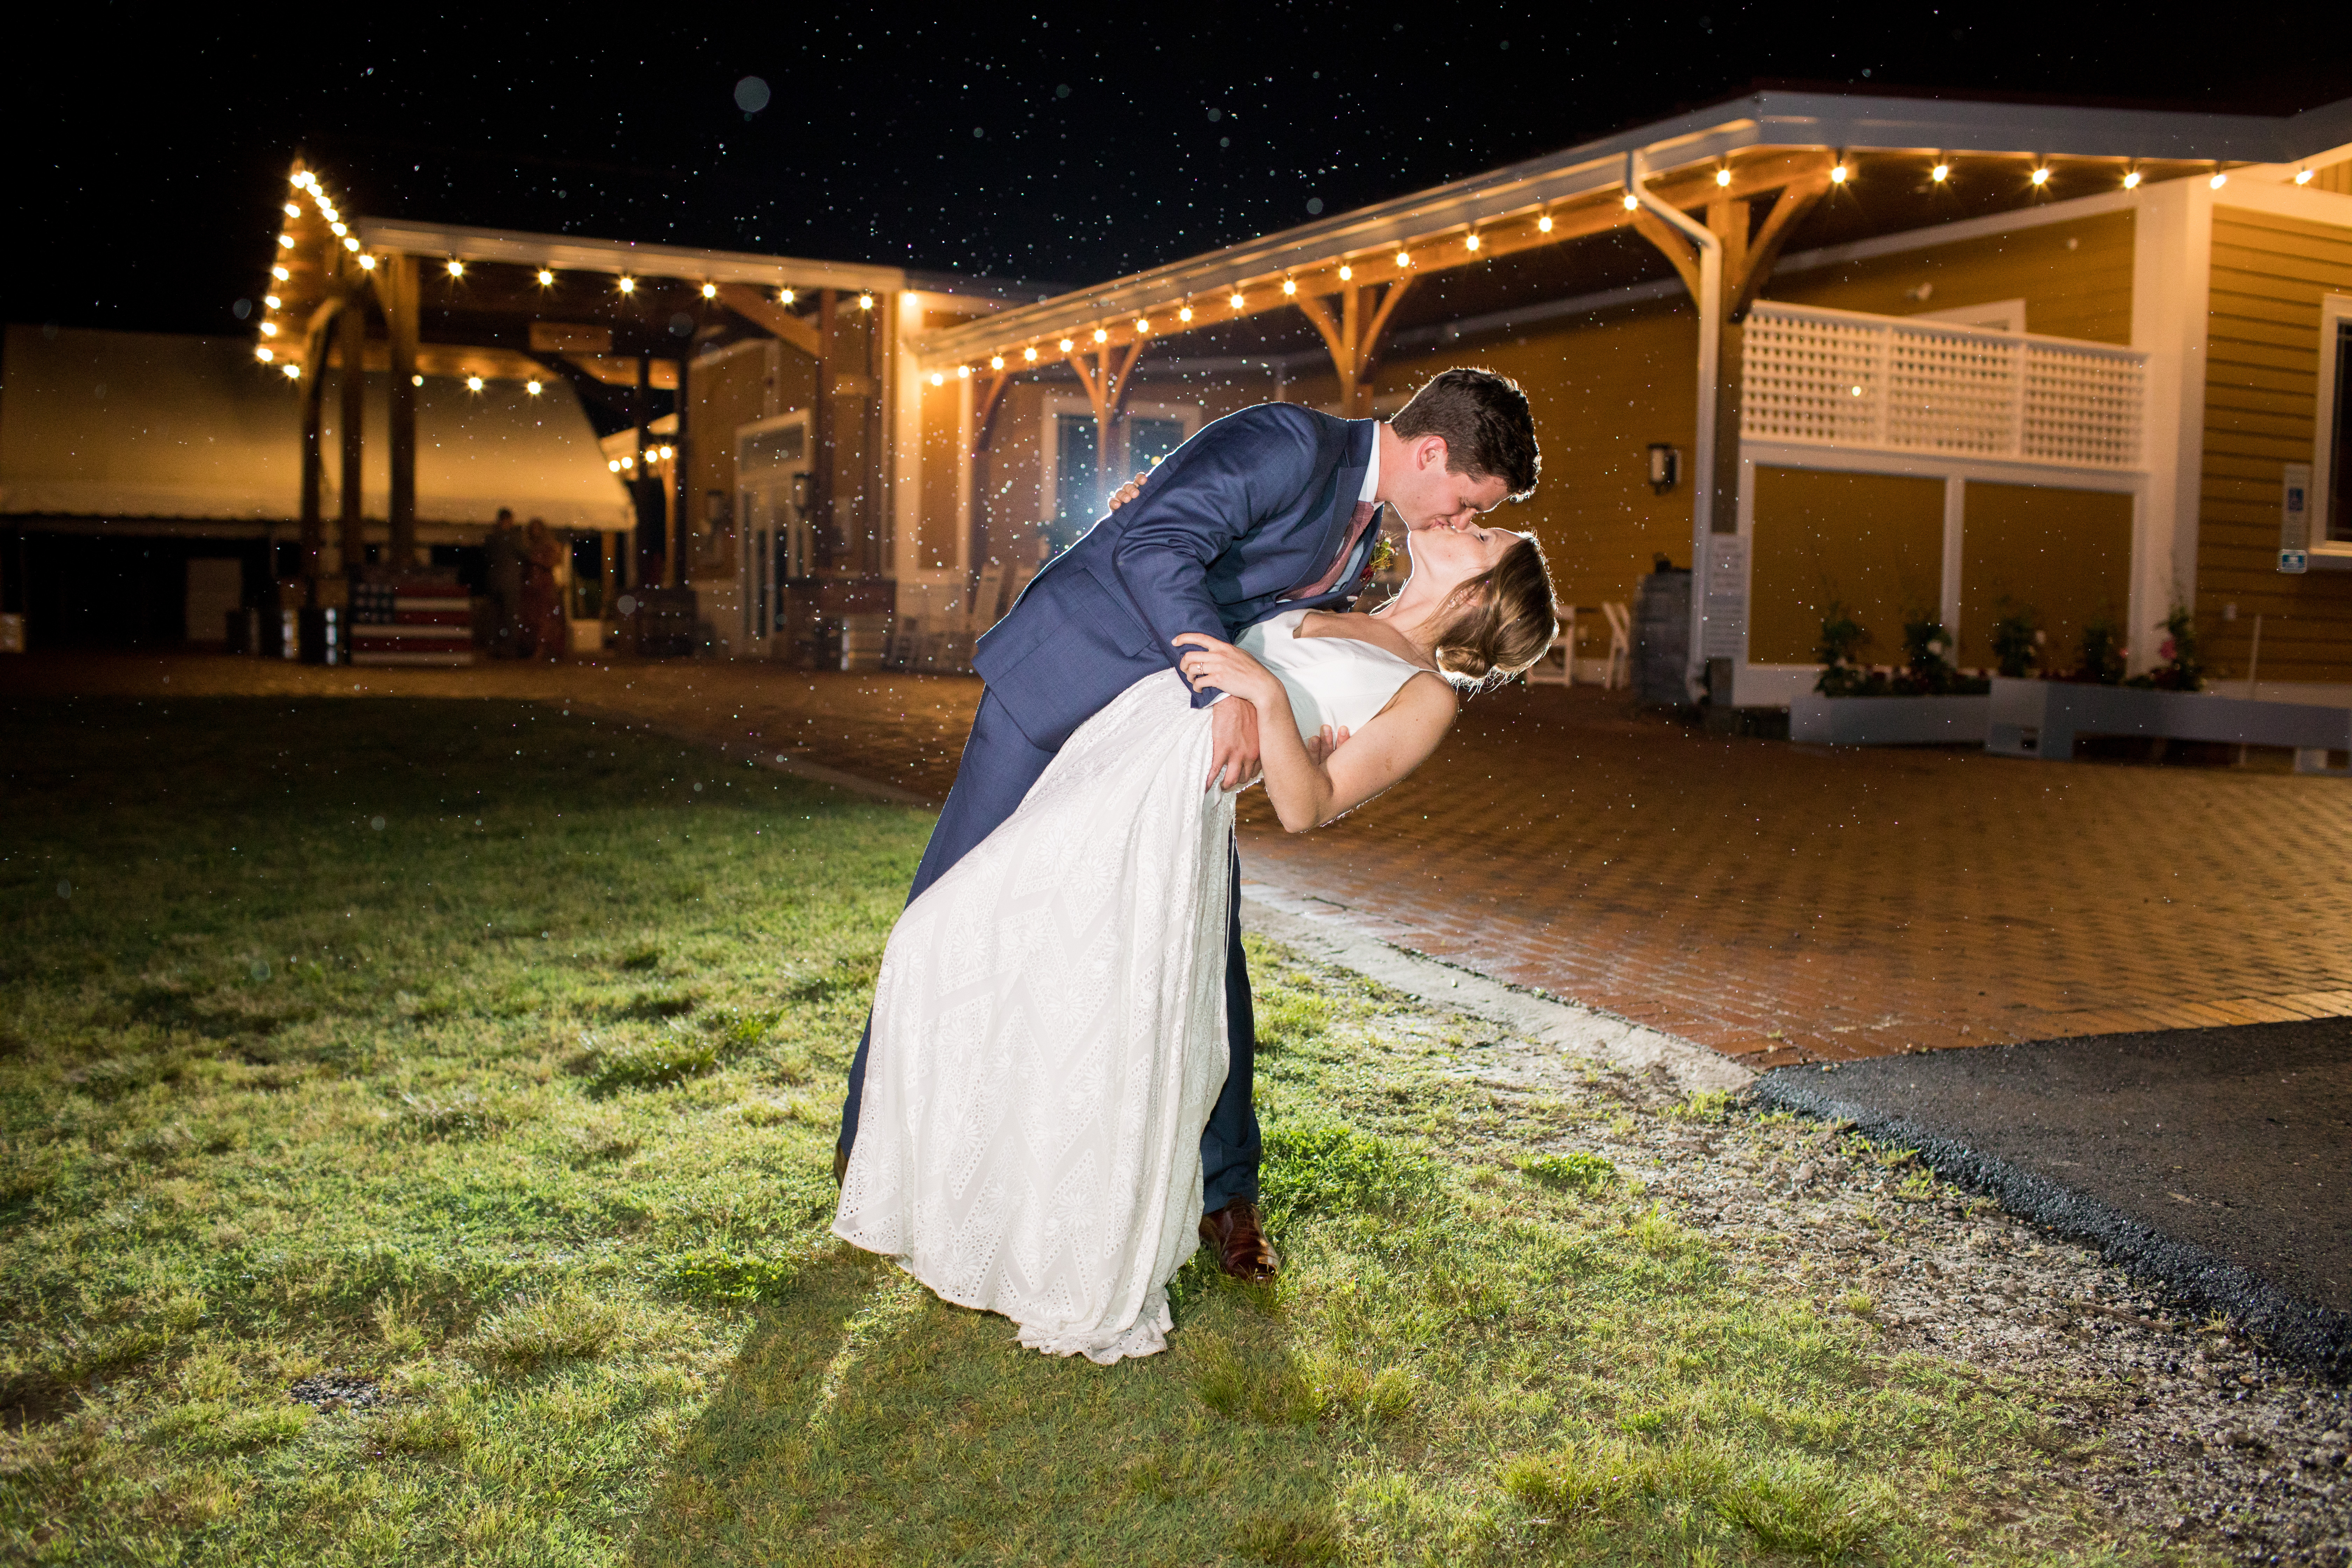 Weddings At Willow Creek Winery – Willow Creek Farm & Winery Intended For Cape May Calendar Of Events 2021